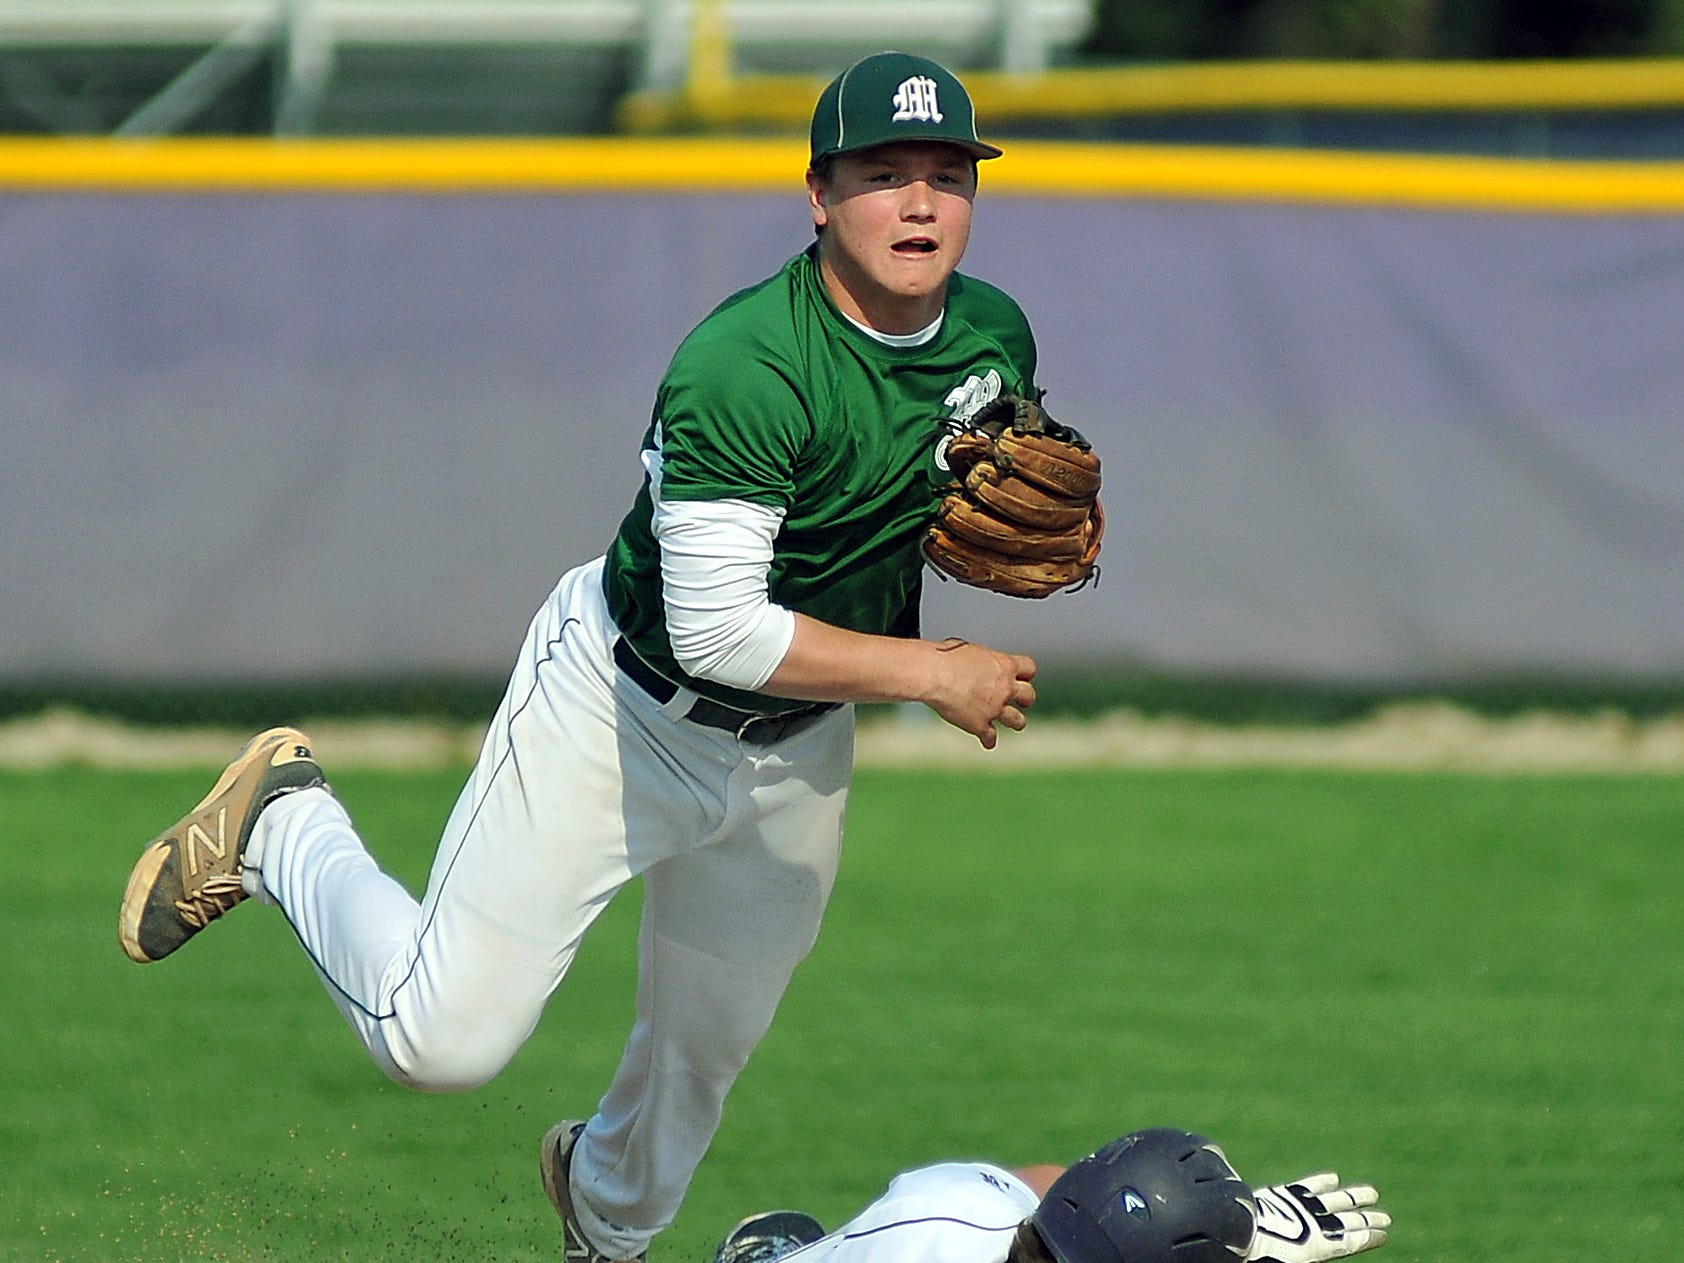 Madison's Alec Keen turns a double play during their game Thursday against Lexington.